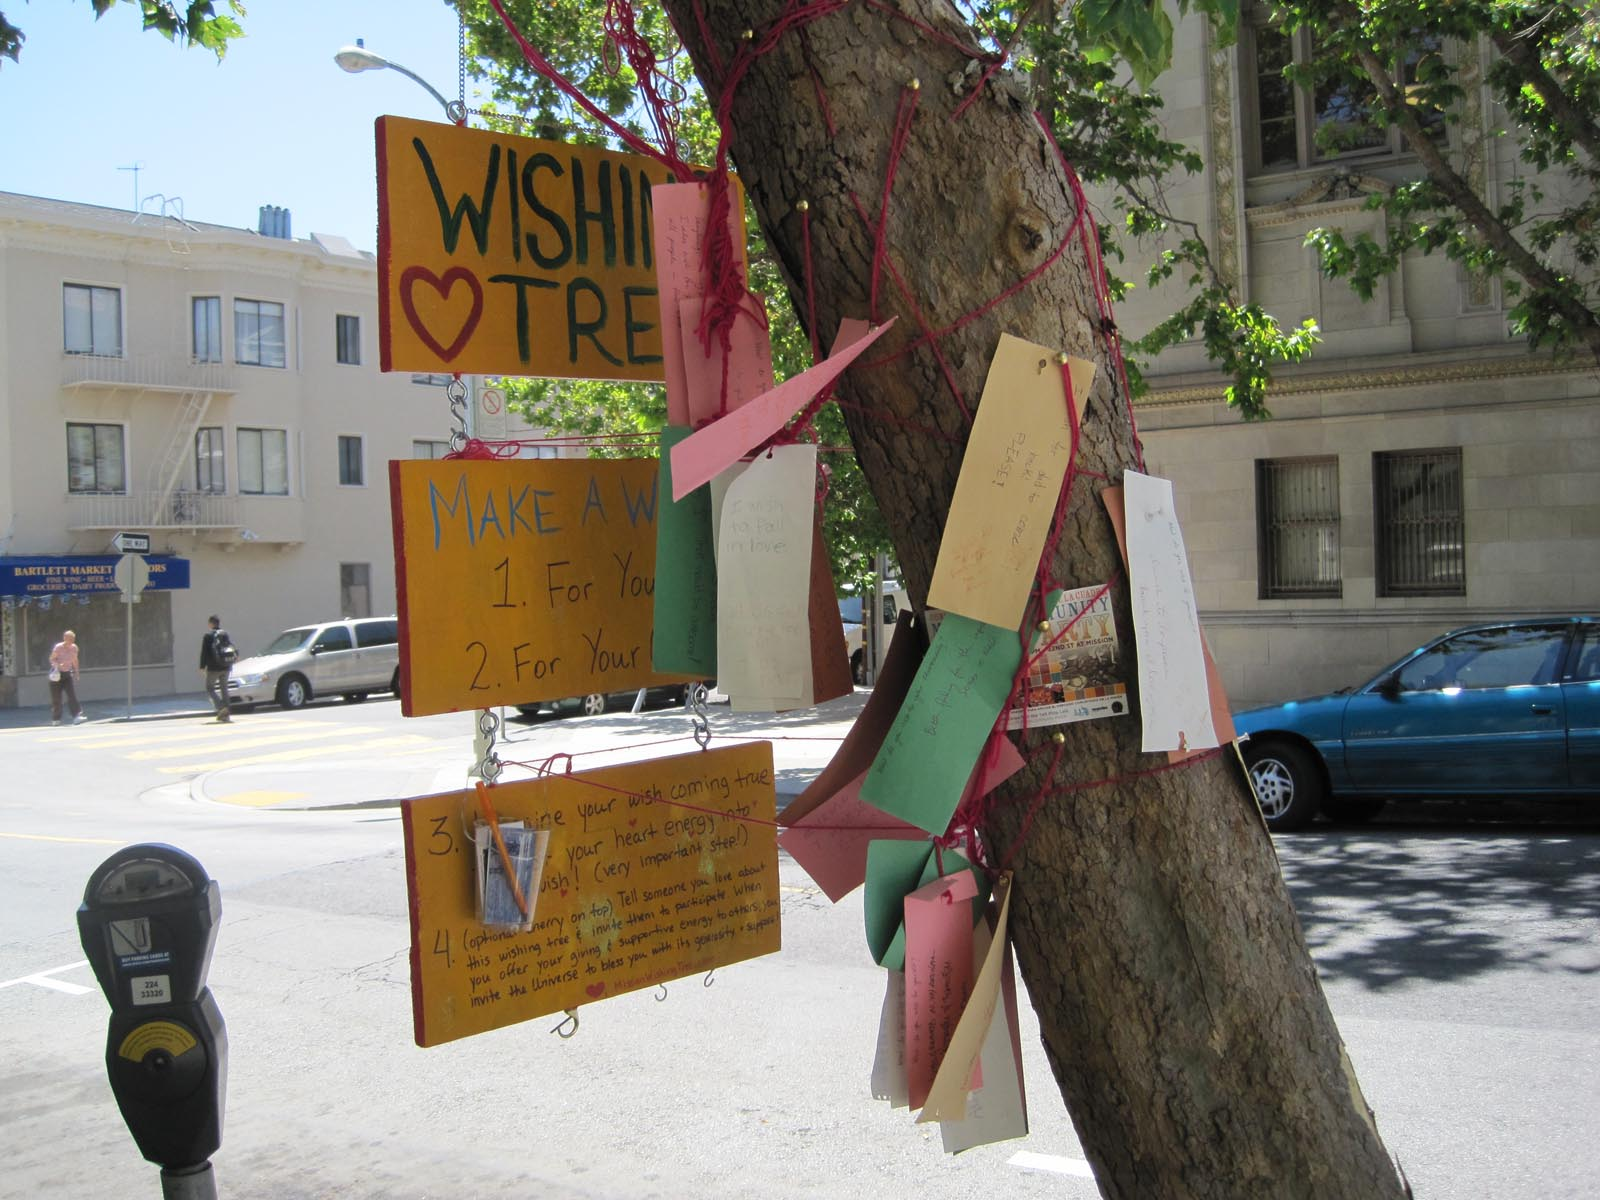 24th Street: Home of the Wishing Tree